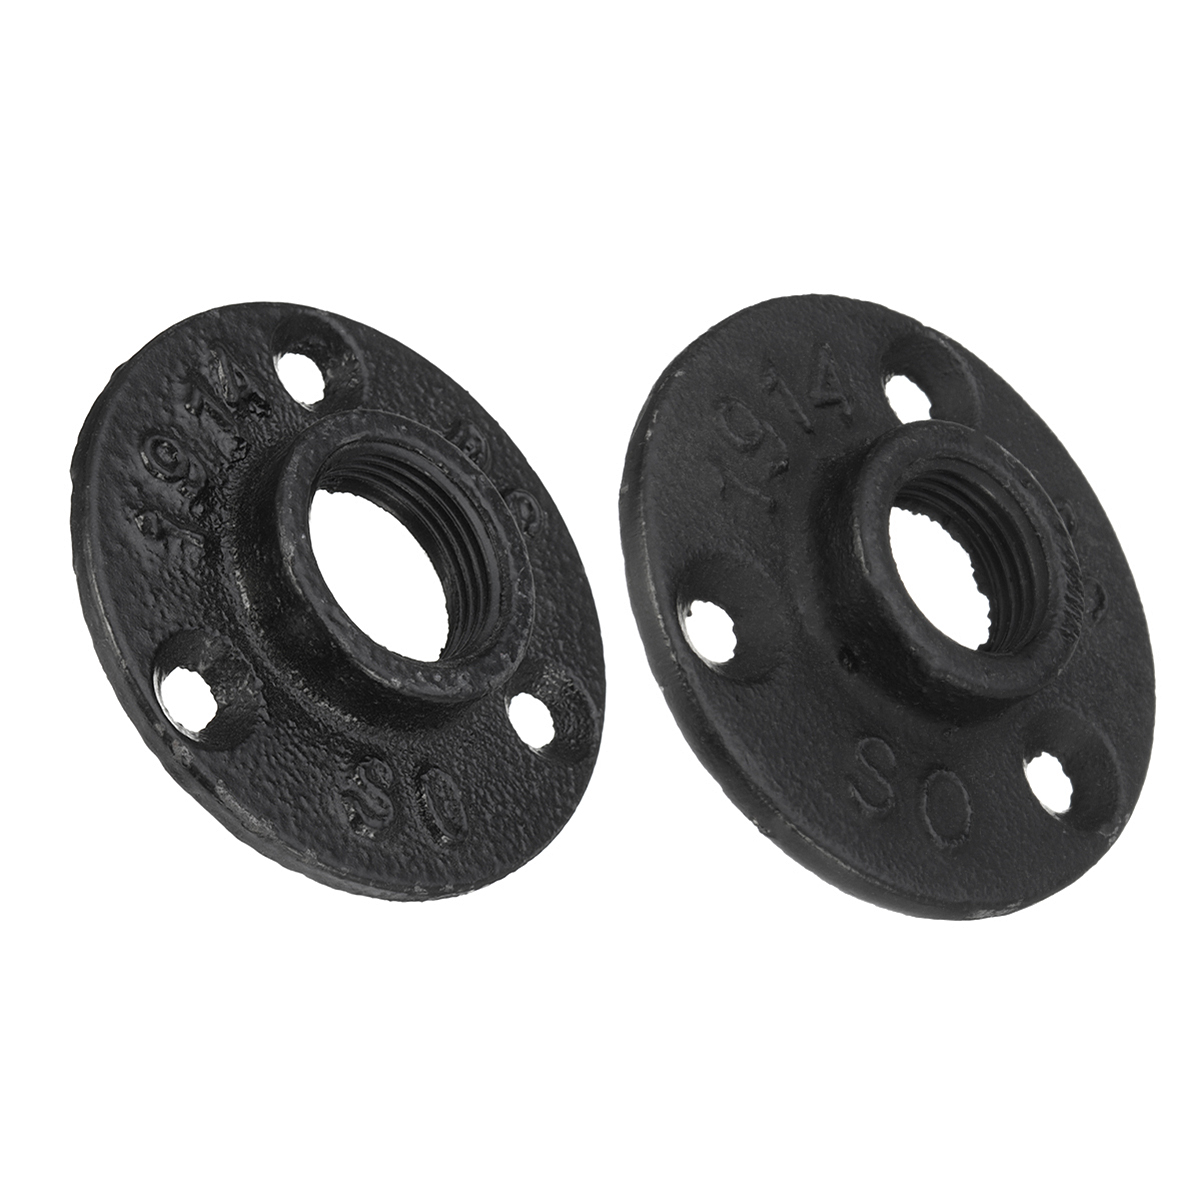 1/2 3/4 Inch Decorative Flange Malleable Iron Floor Wall Flange Pipes Plate Fittings